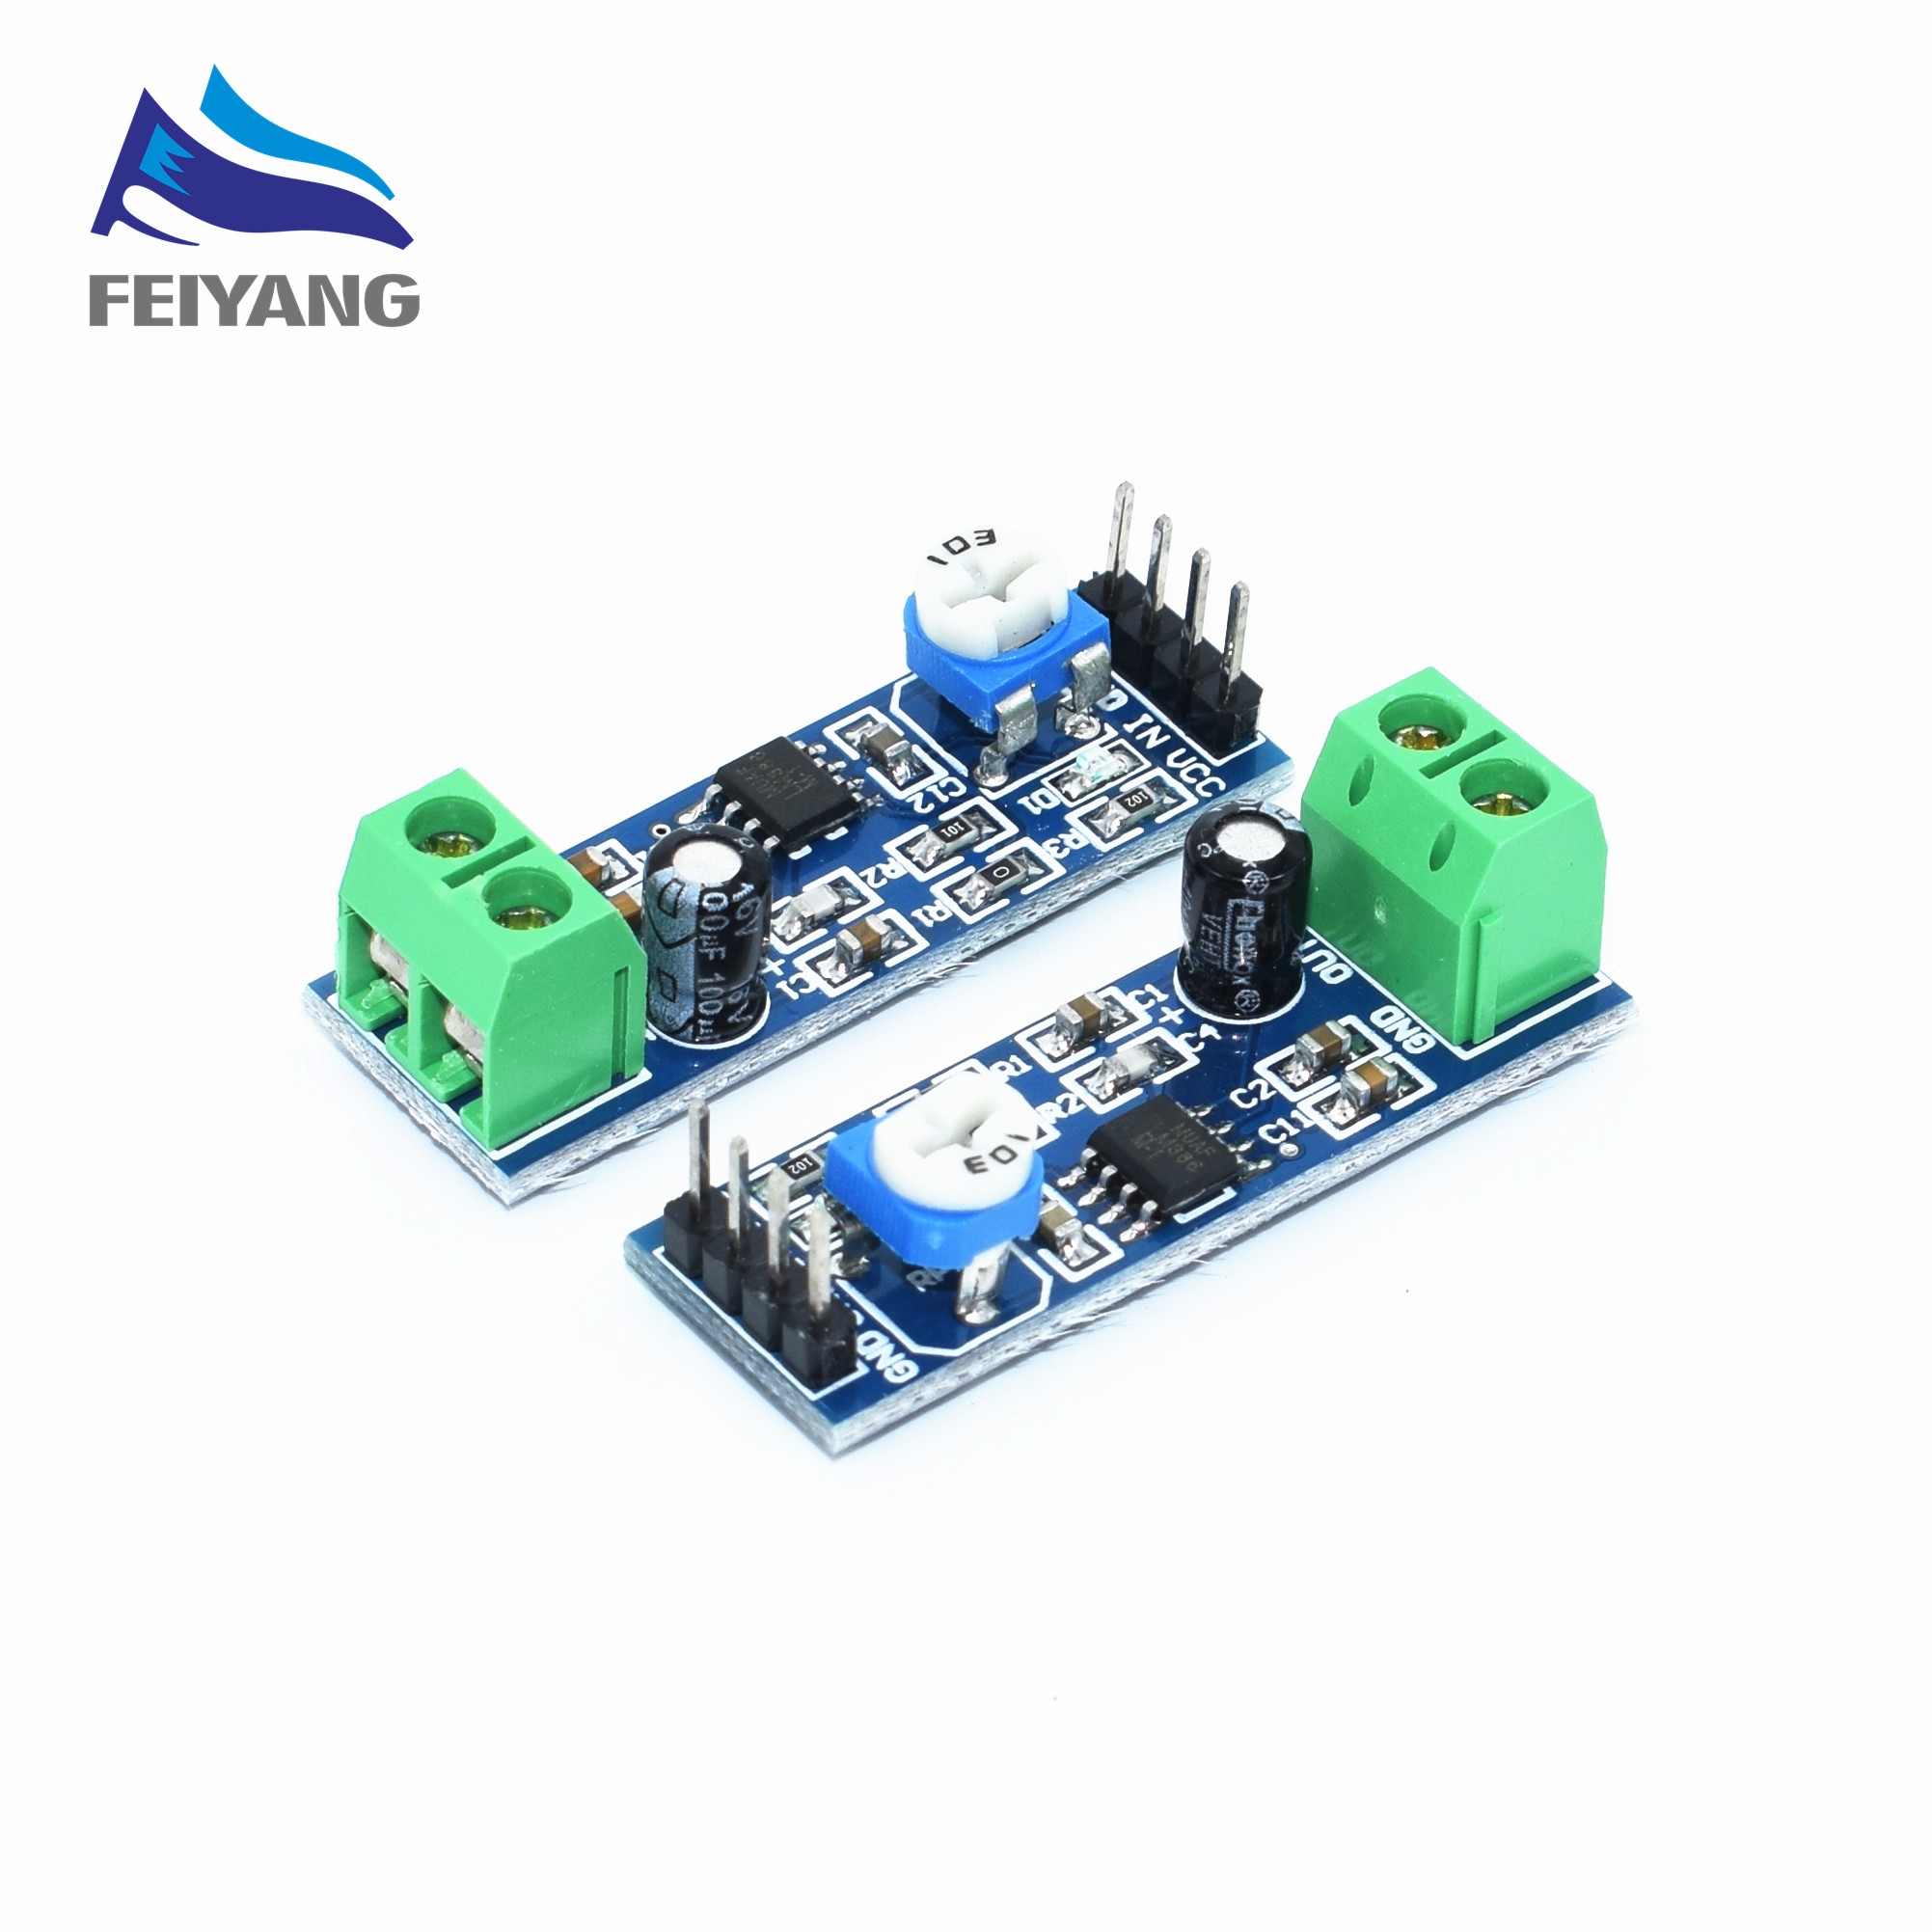 1pcs Lm386 200 Times Gain Audio Amplifier Module 5v 12v Input 10k Schematic Using Laser Diode And Low Voltage Samiore Robot Resistance